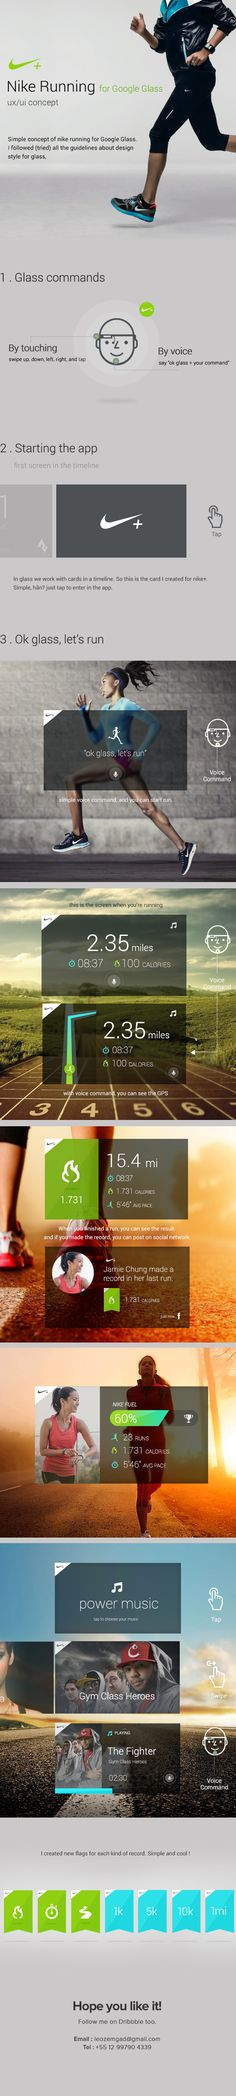 Nike Running for Google Glass by Leonardo Zem, via Behance